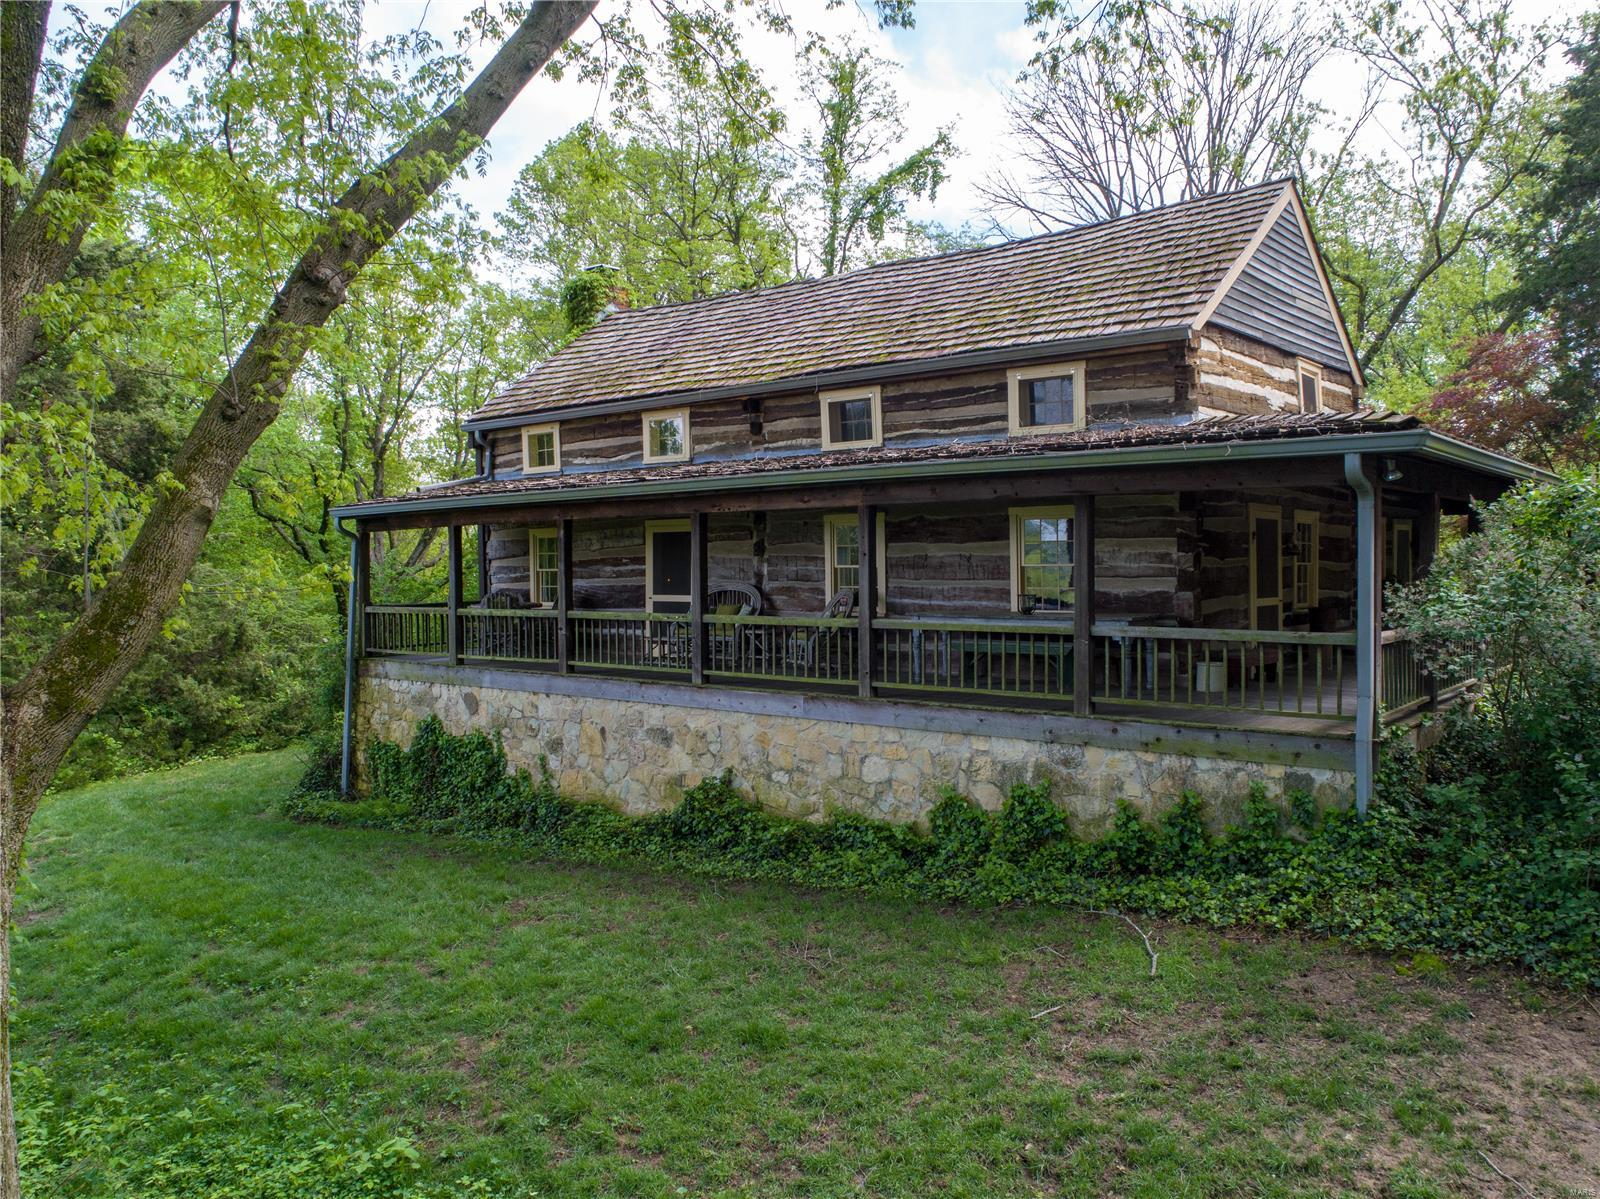 Located only 30 minutes from 270 & 44 is this enchanting compound of structures. Overlooking the Missouri River Valley is this completely private 7+ acre parcel of land with mature trees and lush woodland gardens. The main log home has been meticulously preserved and enhanced for today's needs. A covered porch stretches across two sides of the home, providing a special vantage point of the river. The main level of the home has an eat-in kitchen and is separated from the living room by a huge stone wood-burning fireplace. Off of the living room is a parlor that can also be used as a main floor master bedroom with another fireplace. The upper floor features a bedroom and fireplace. The lower level was enhanced to be a more modern living space with a recreation room, office, and full bath. Guest cottage below the two-car garage. There is a historic log cabin that you pass as you walk to the log chapel. This special structure has hosted weddings, and services and boasts a gas fireplace.